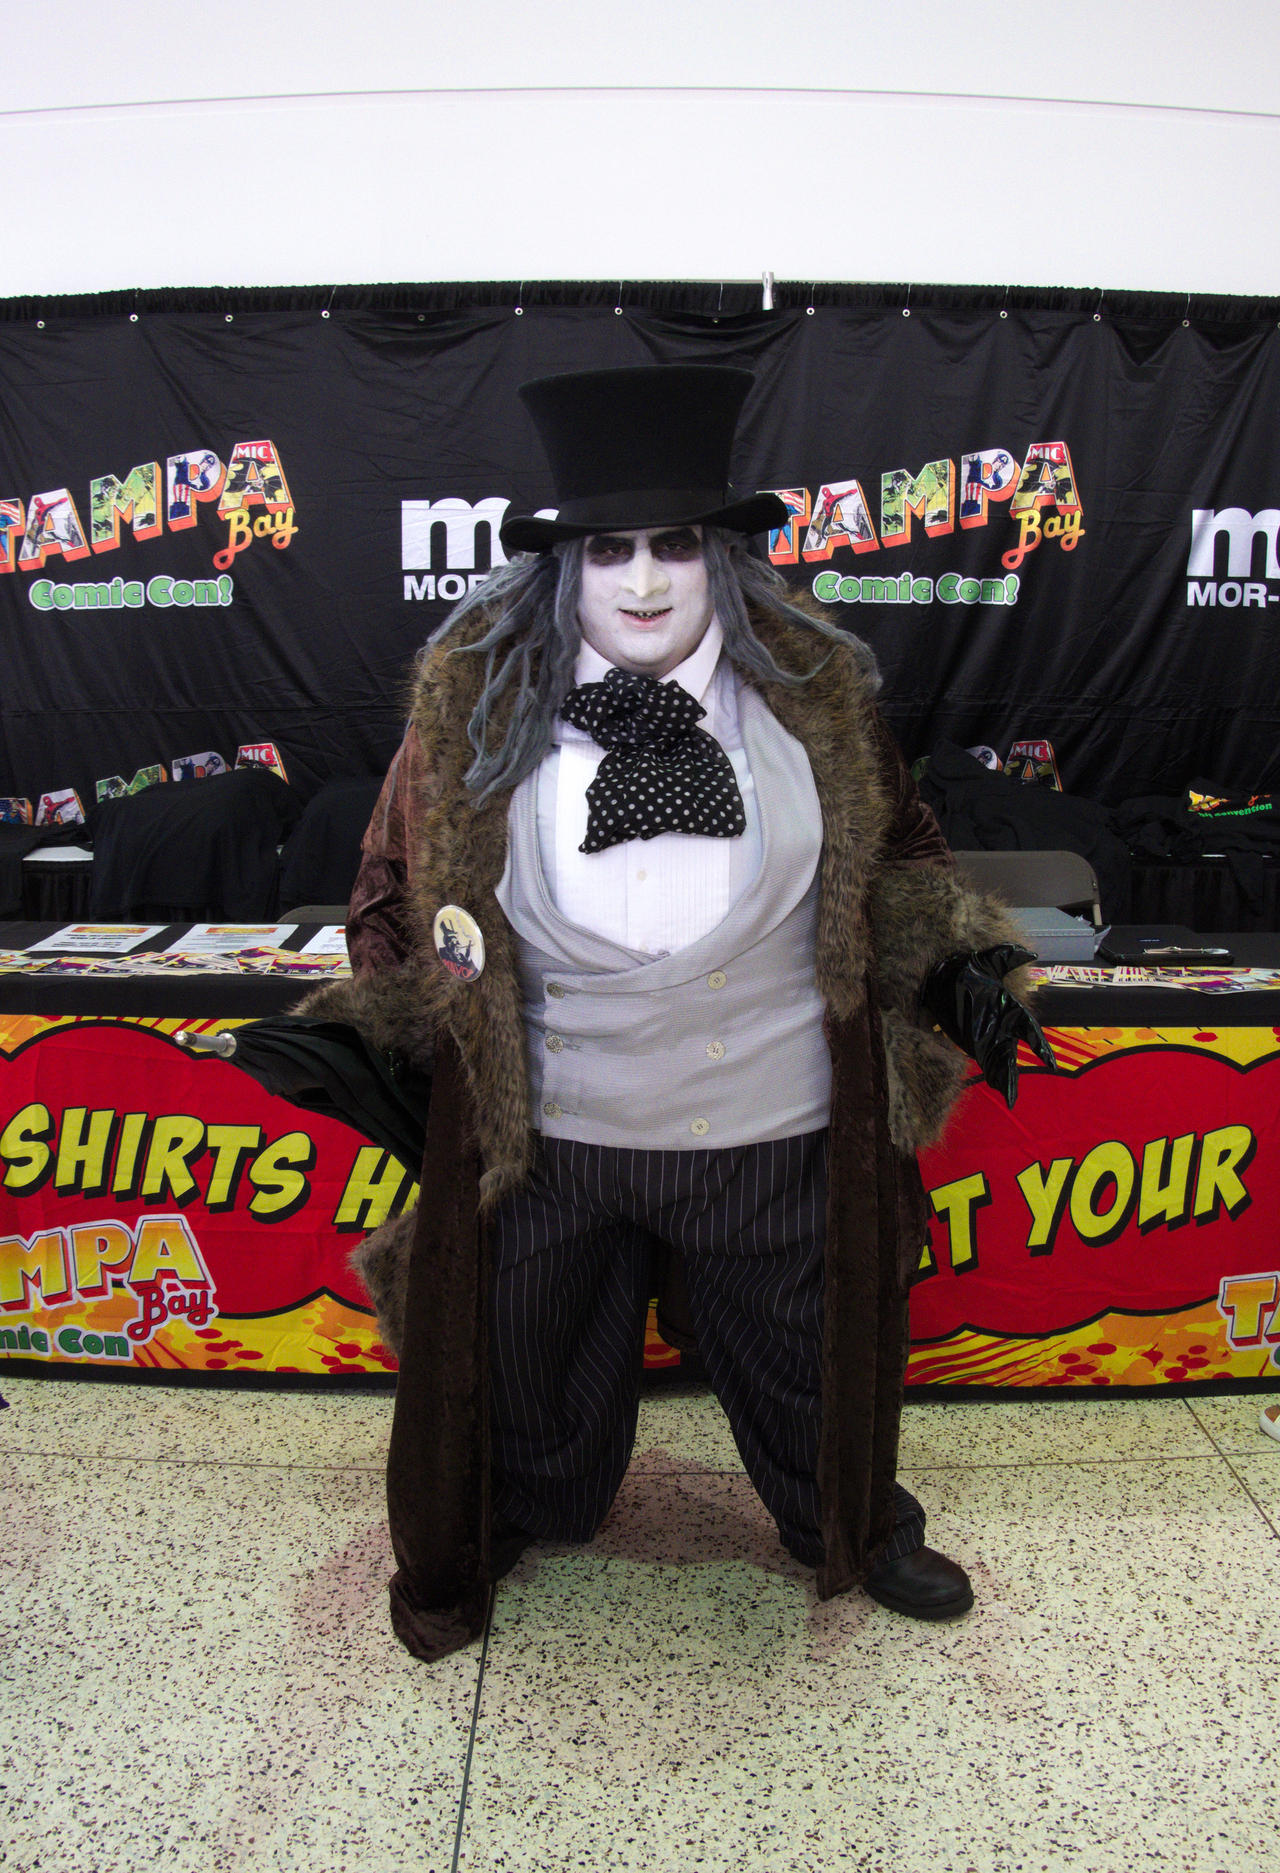 Tampa Bay Comic Con 2019: The Penguin by CarlShepard on